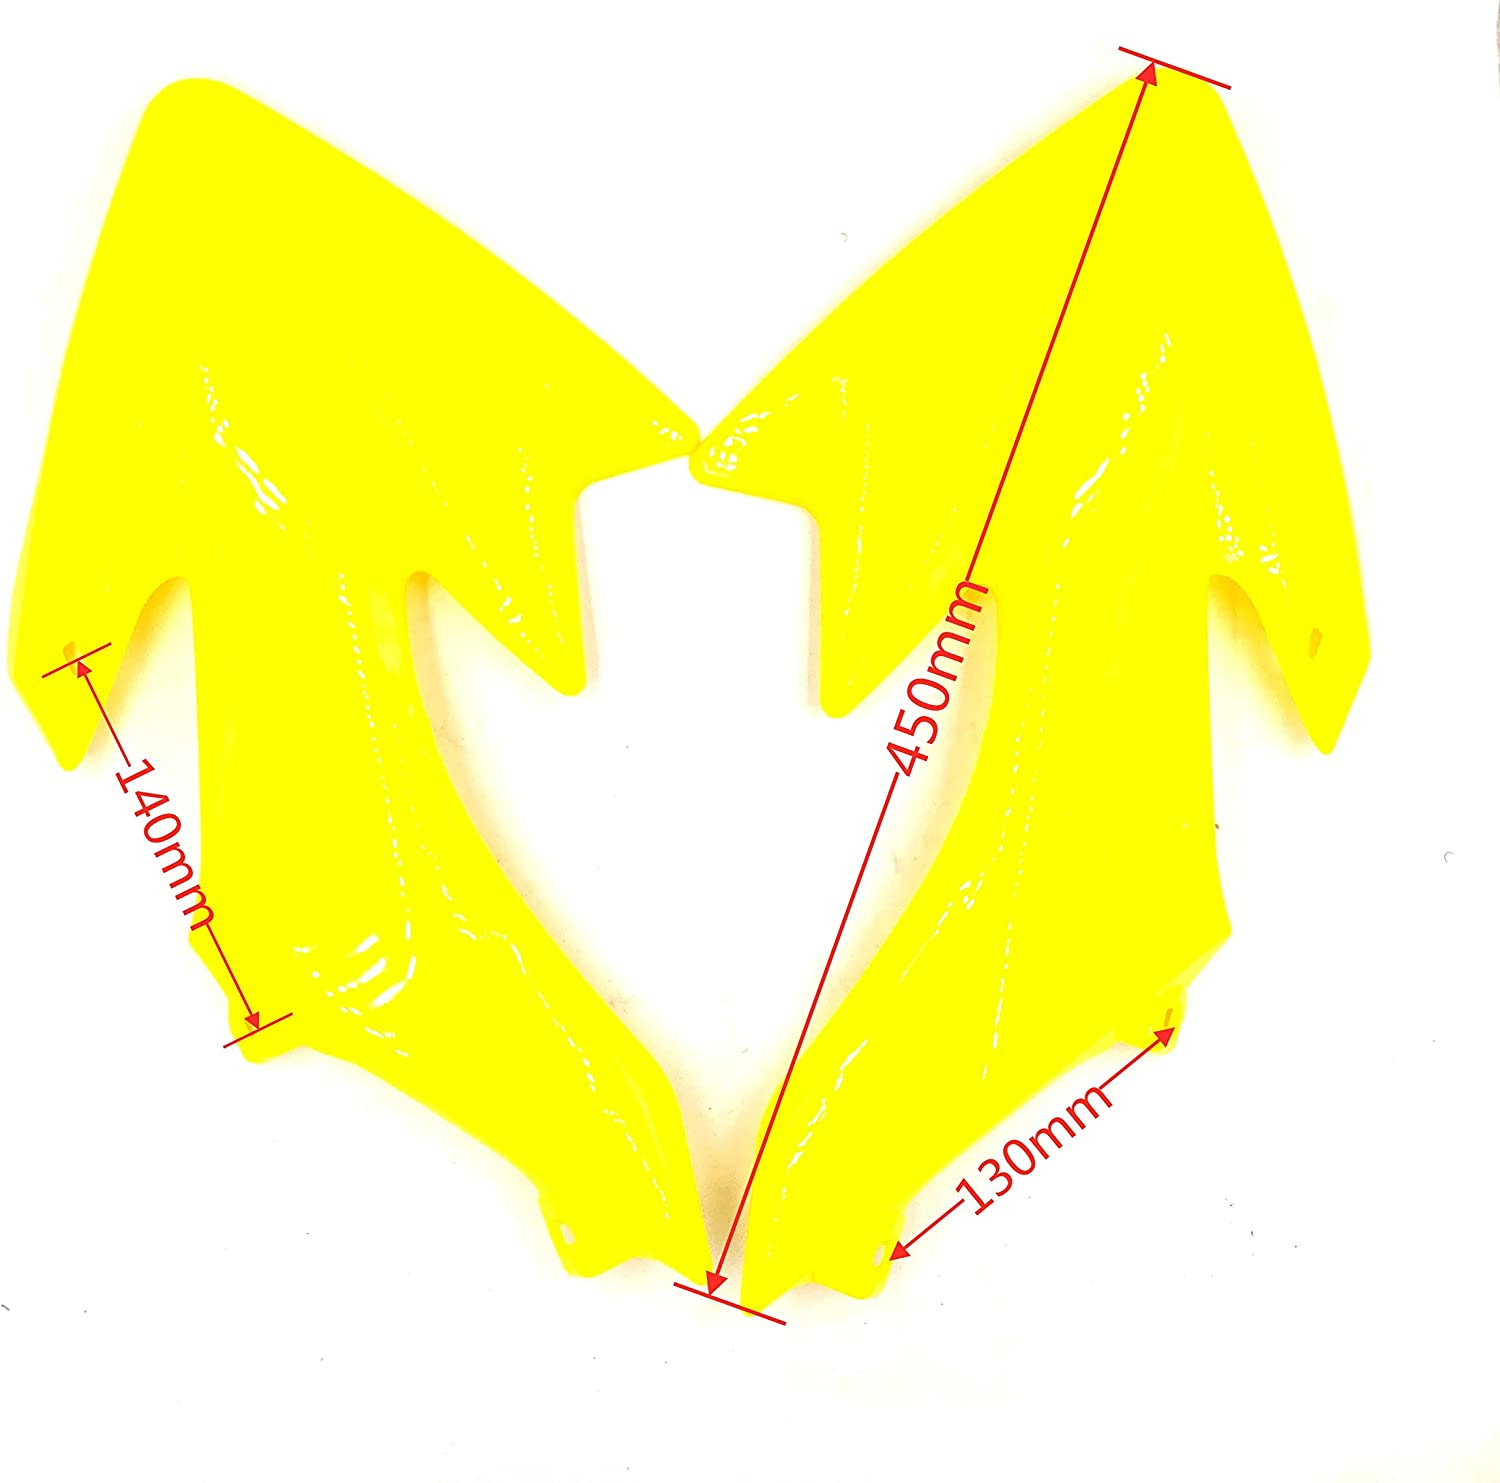 hongyu CRF50 Yellow Plastic Body Fender Kit for Chinese CRF XR 50cc Pit Dirt Bikes Including All Mounting Screw